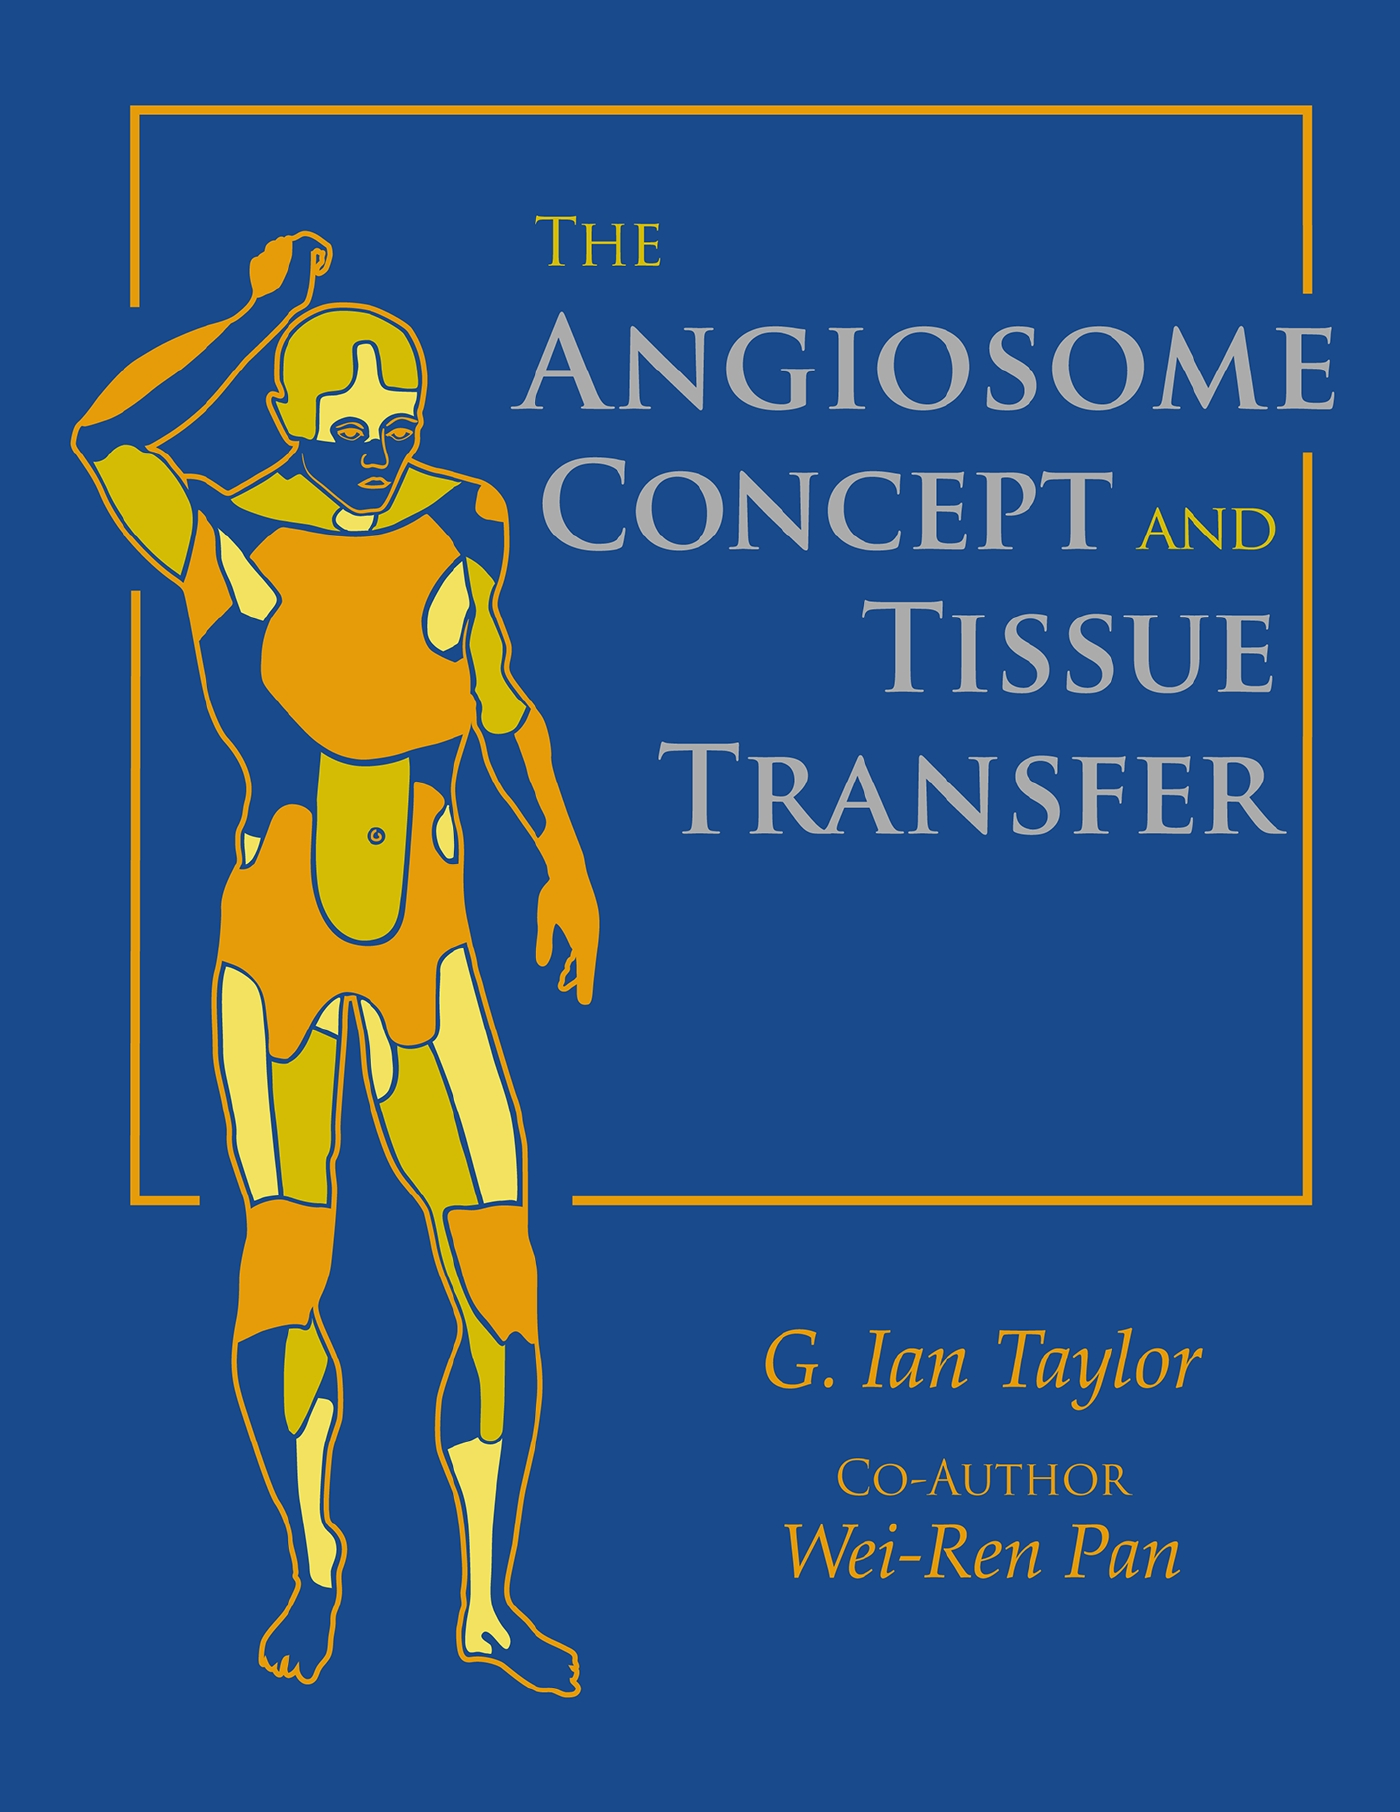 The Angiosome Concept and Tissue Transfer